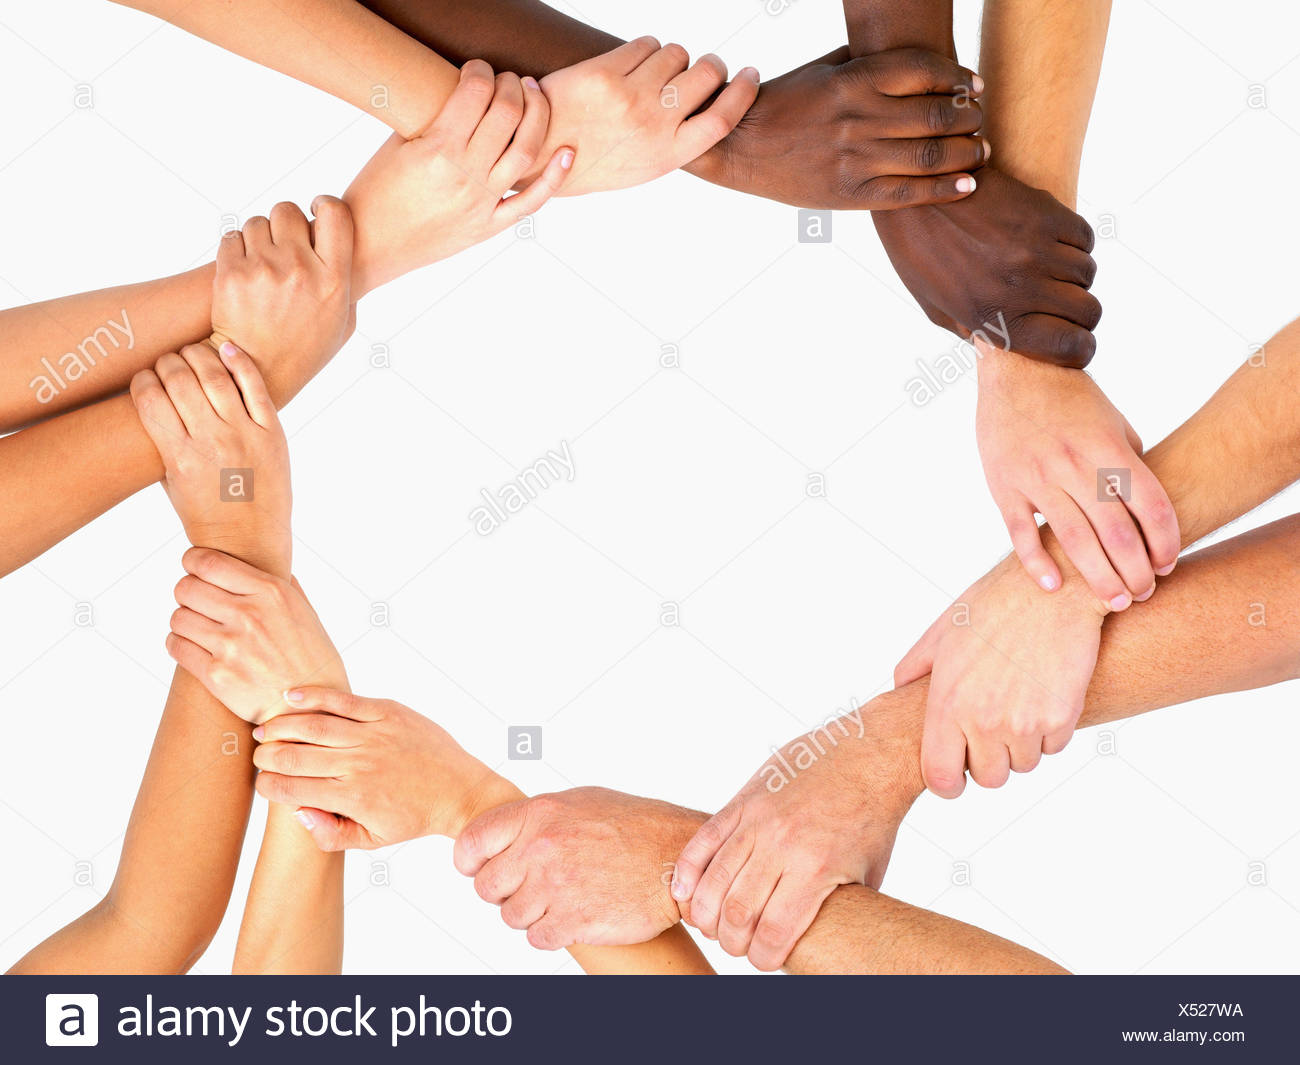 Clasped Hands In A Circle Stock Photo